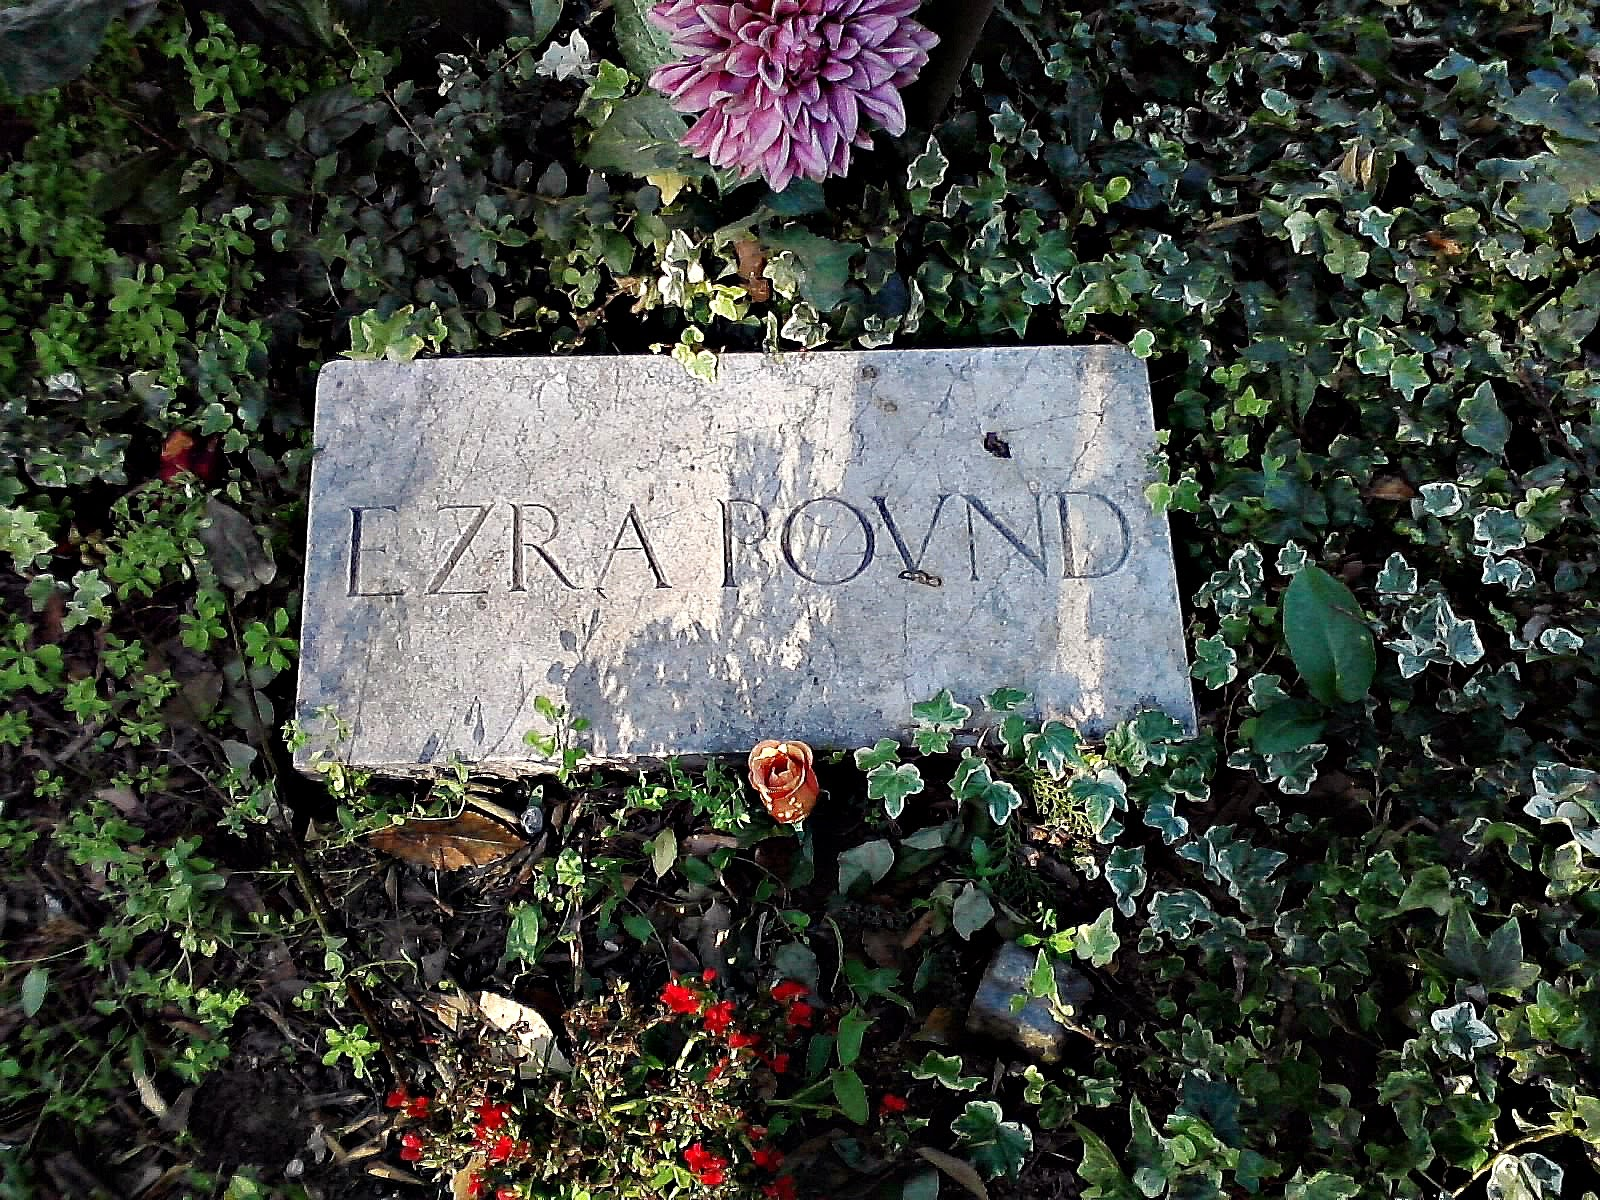 Ezra Pound grave - Venice, Italy, Photo by Cat Bauer - Venice Blog